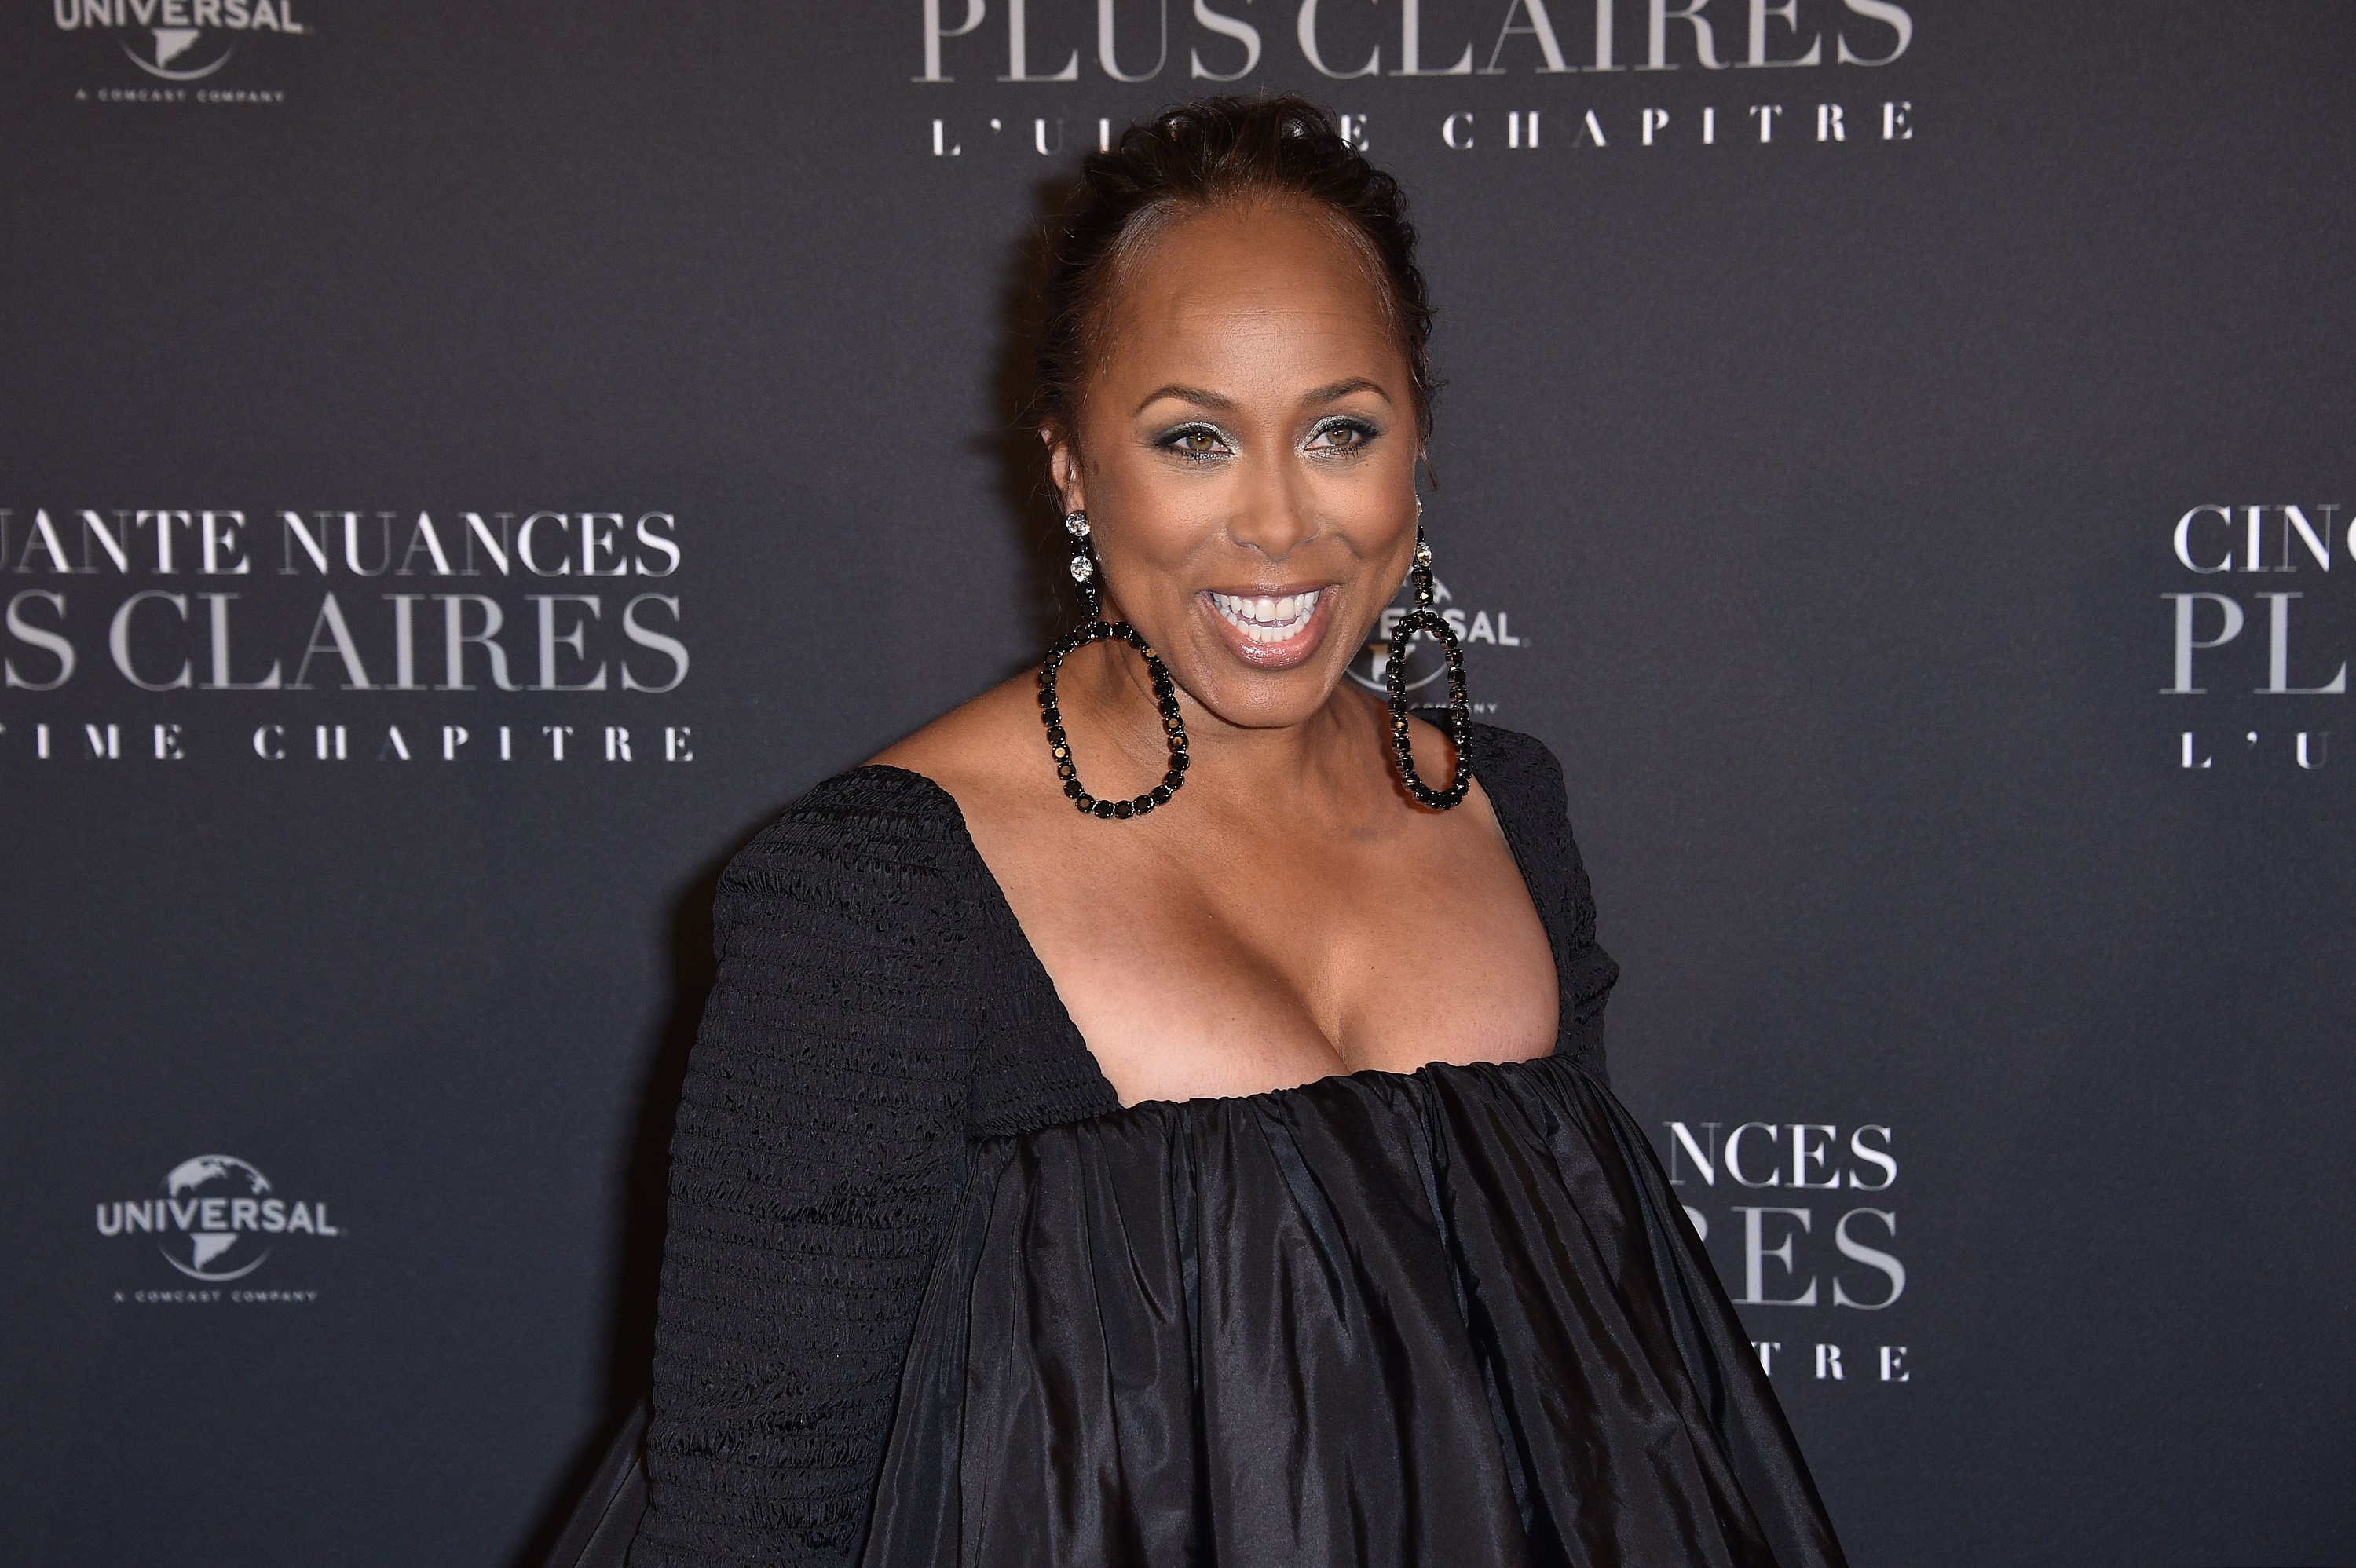 """Marjorie Harvey poses at the Paris premiere of """"Fifty Shades Freed - 50 Nuances Plus Clair"""" on February 6, 2018 in Paris, France. 